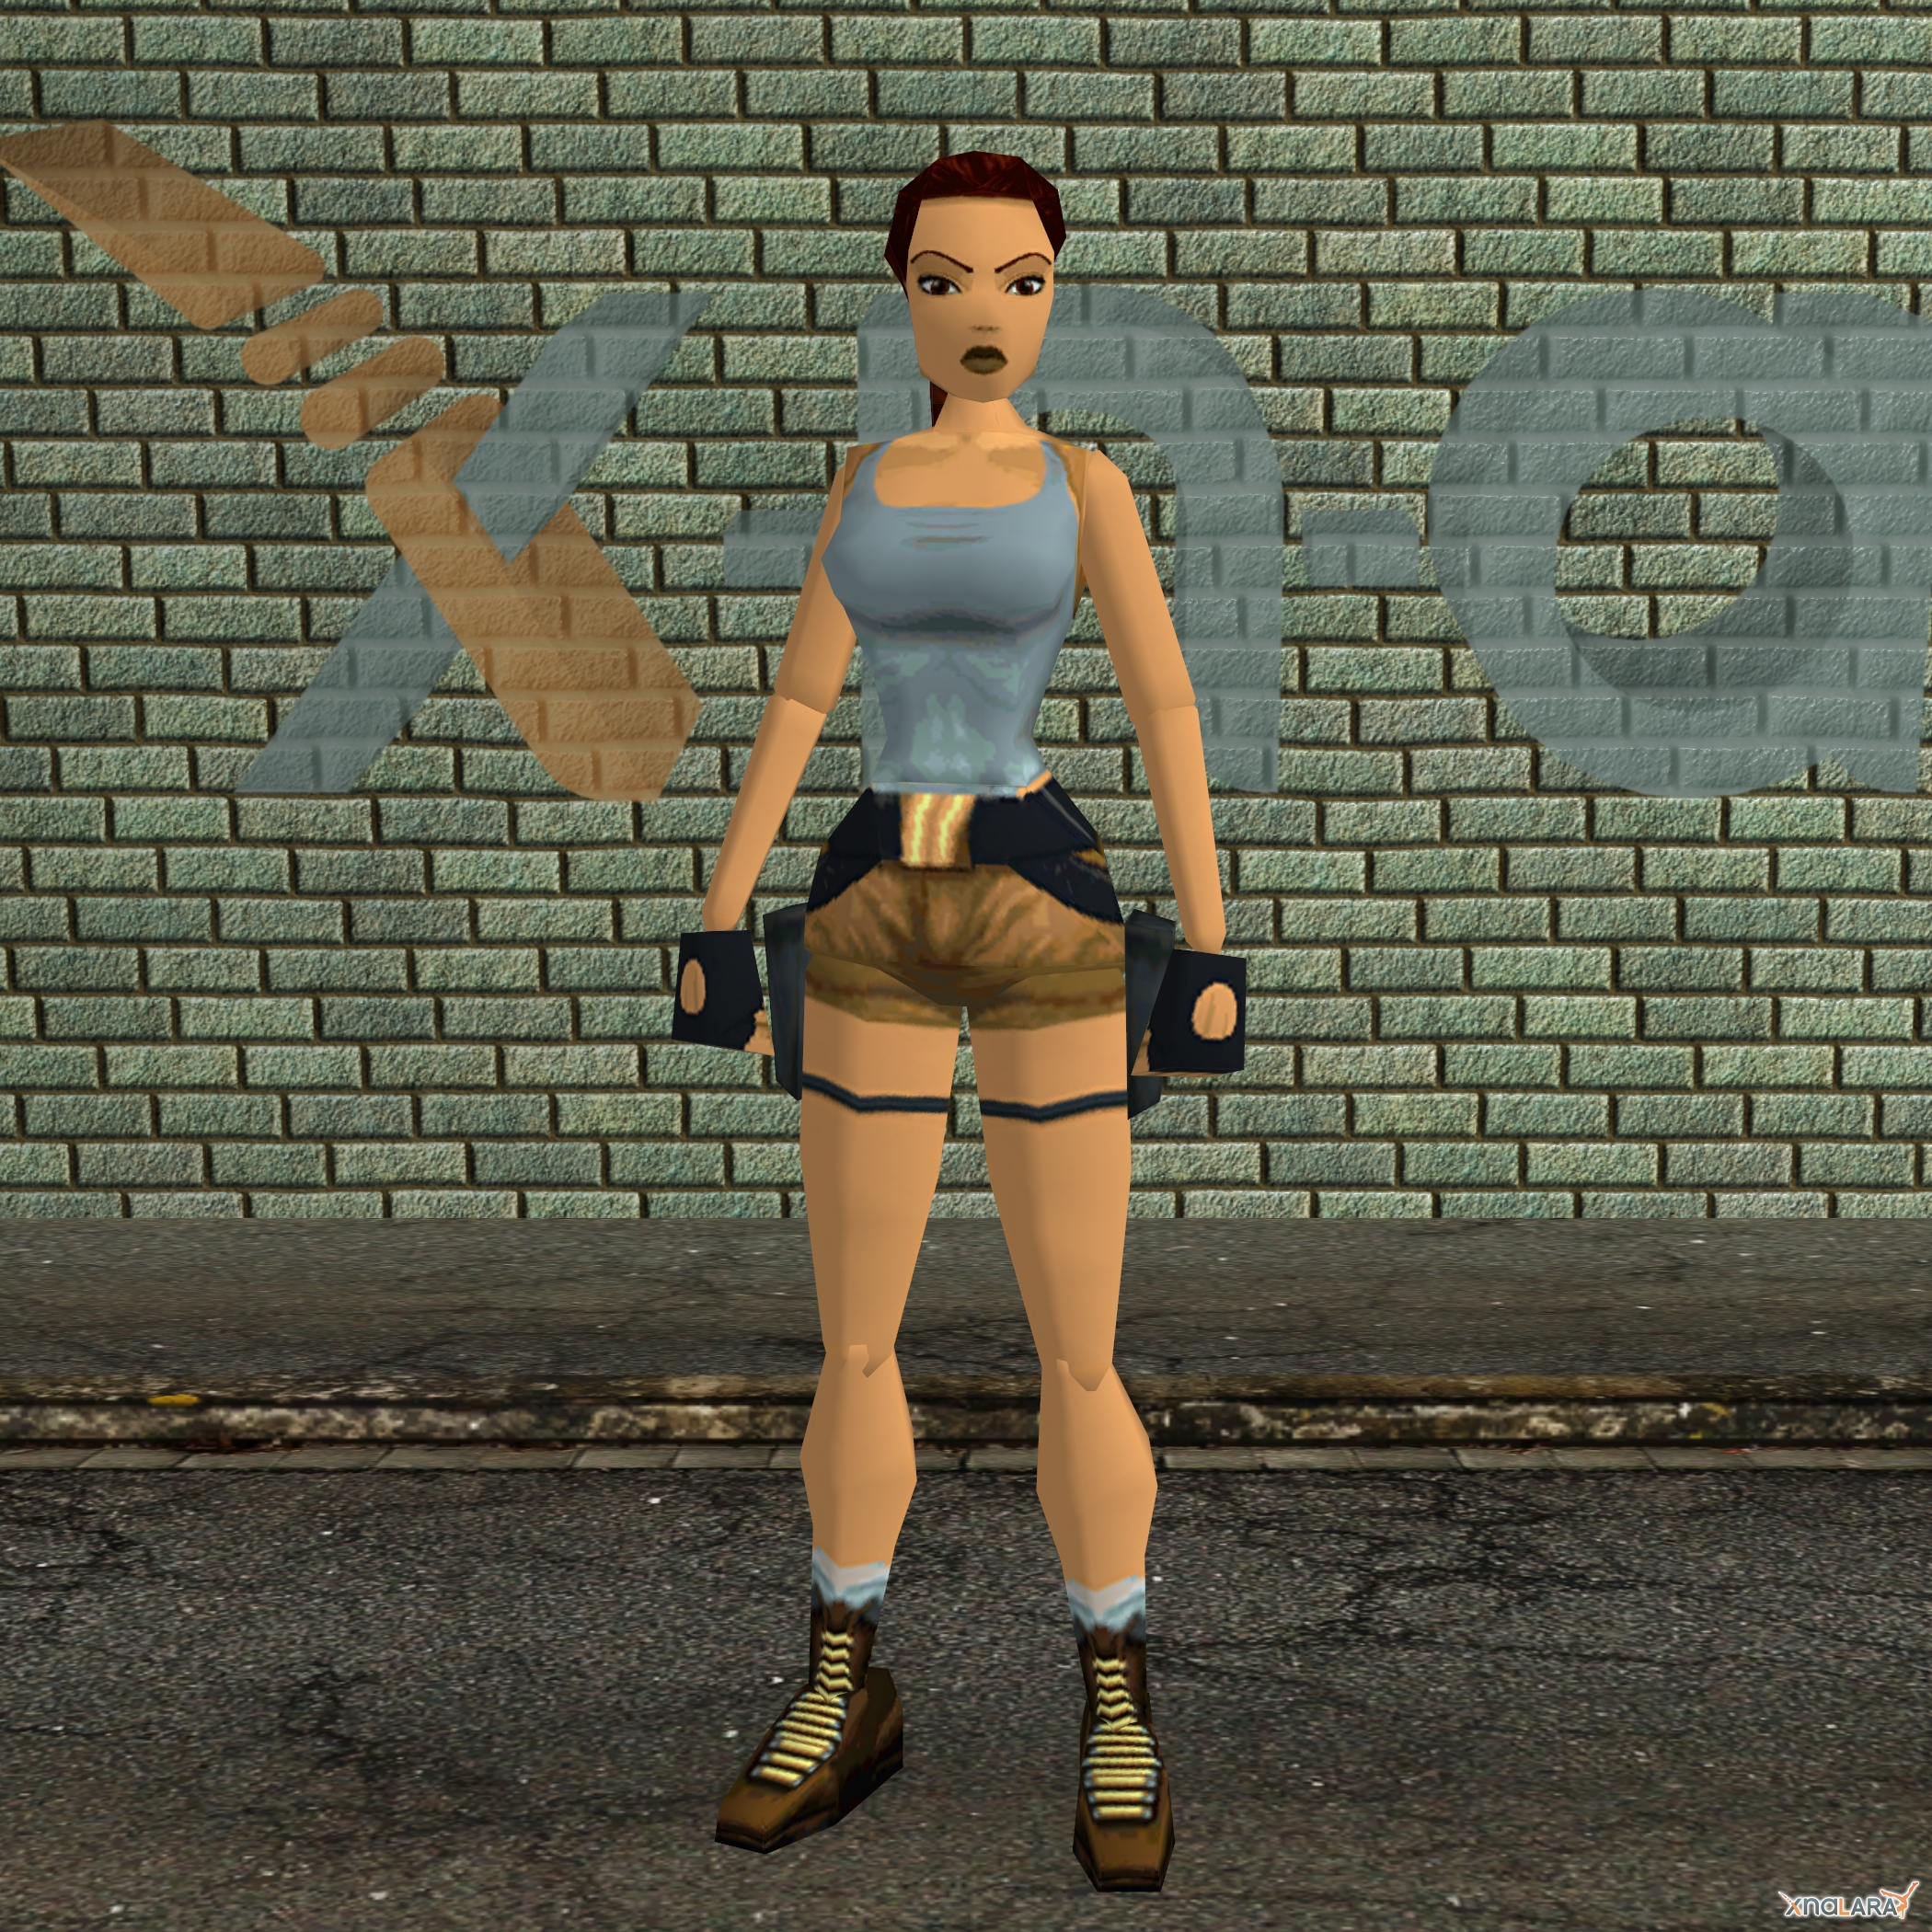 Lara croft old game porn videos